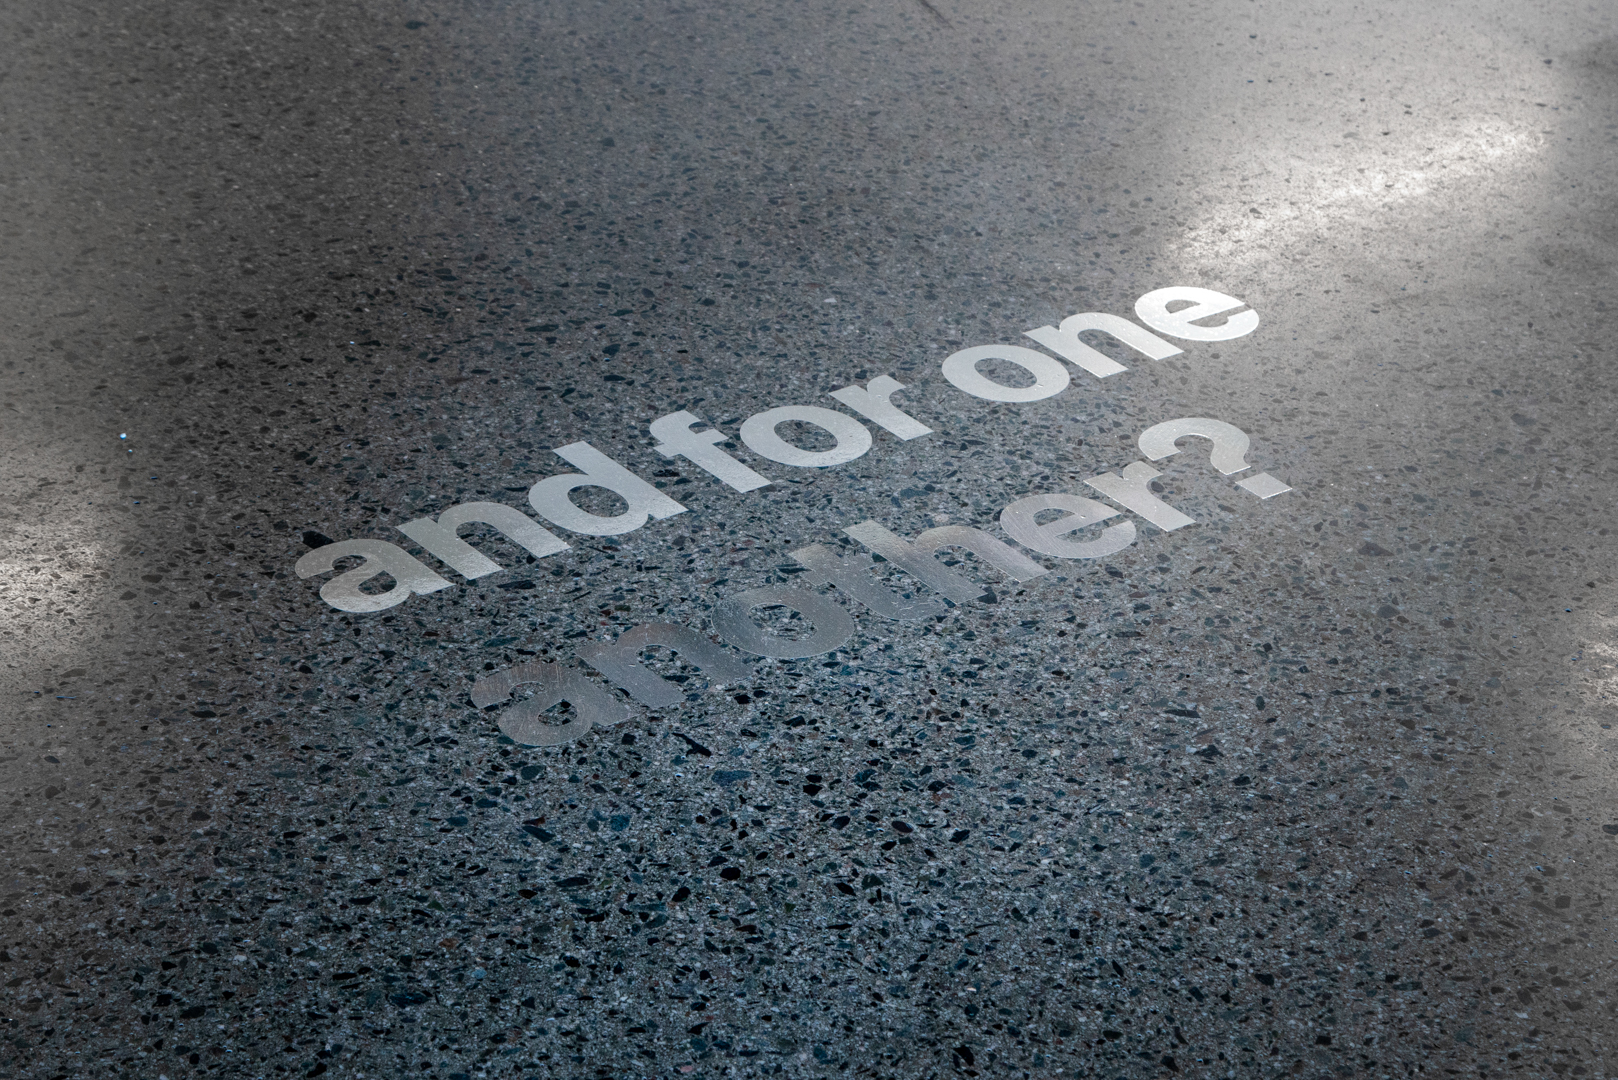 On the grey floor, a silvery vinyl text reads, quote, and for one another?, end quote.